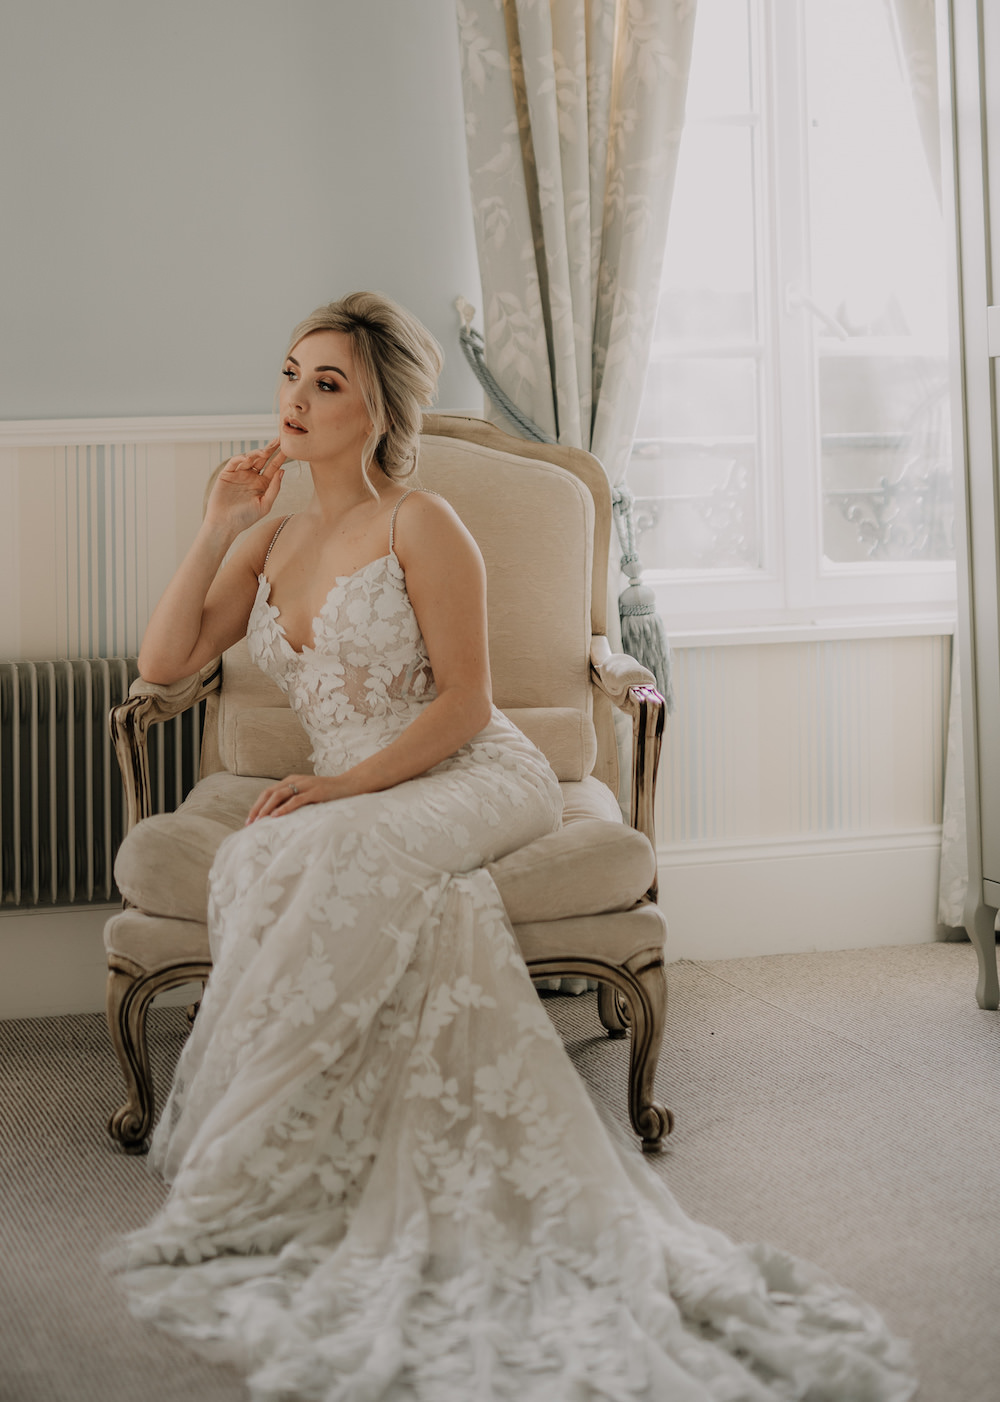 Dress Gown Bride Bridal Lace Fit Flare Train France Elopement Ideas Pierra G Photography